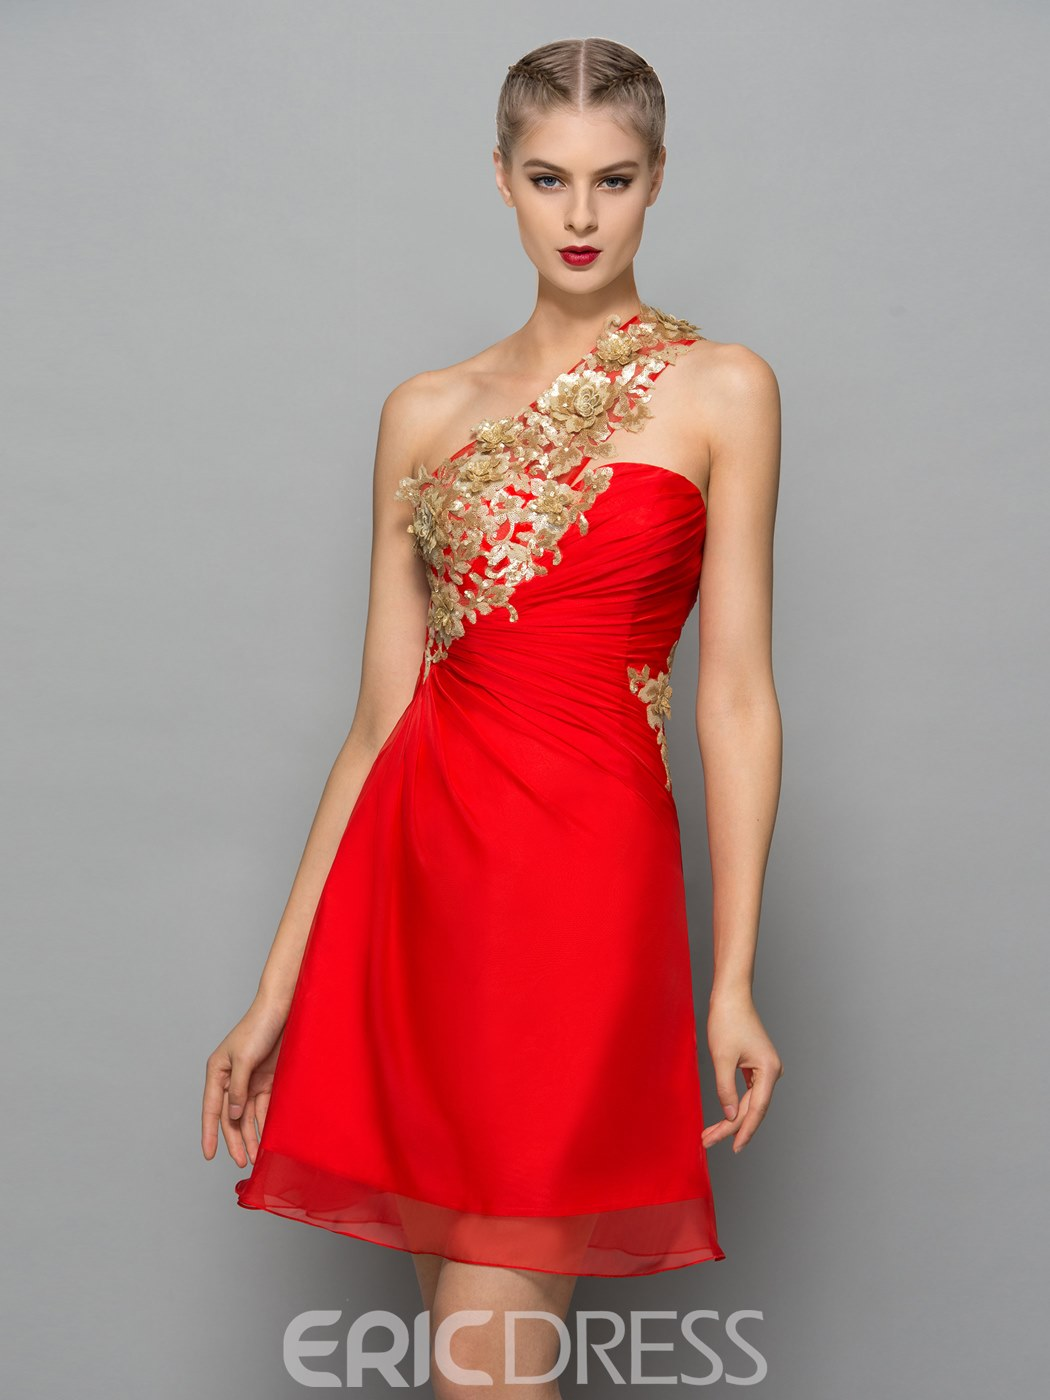 Ericdress One Shoulder Sequins Pleats Red Cocktail Dress 11936542 ...